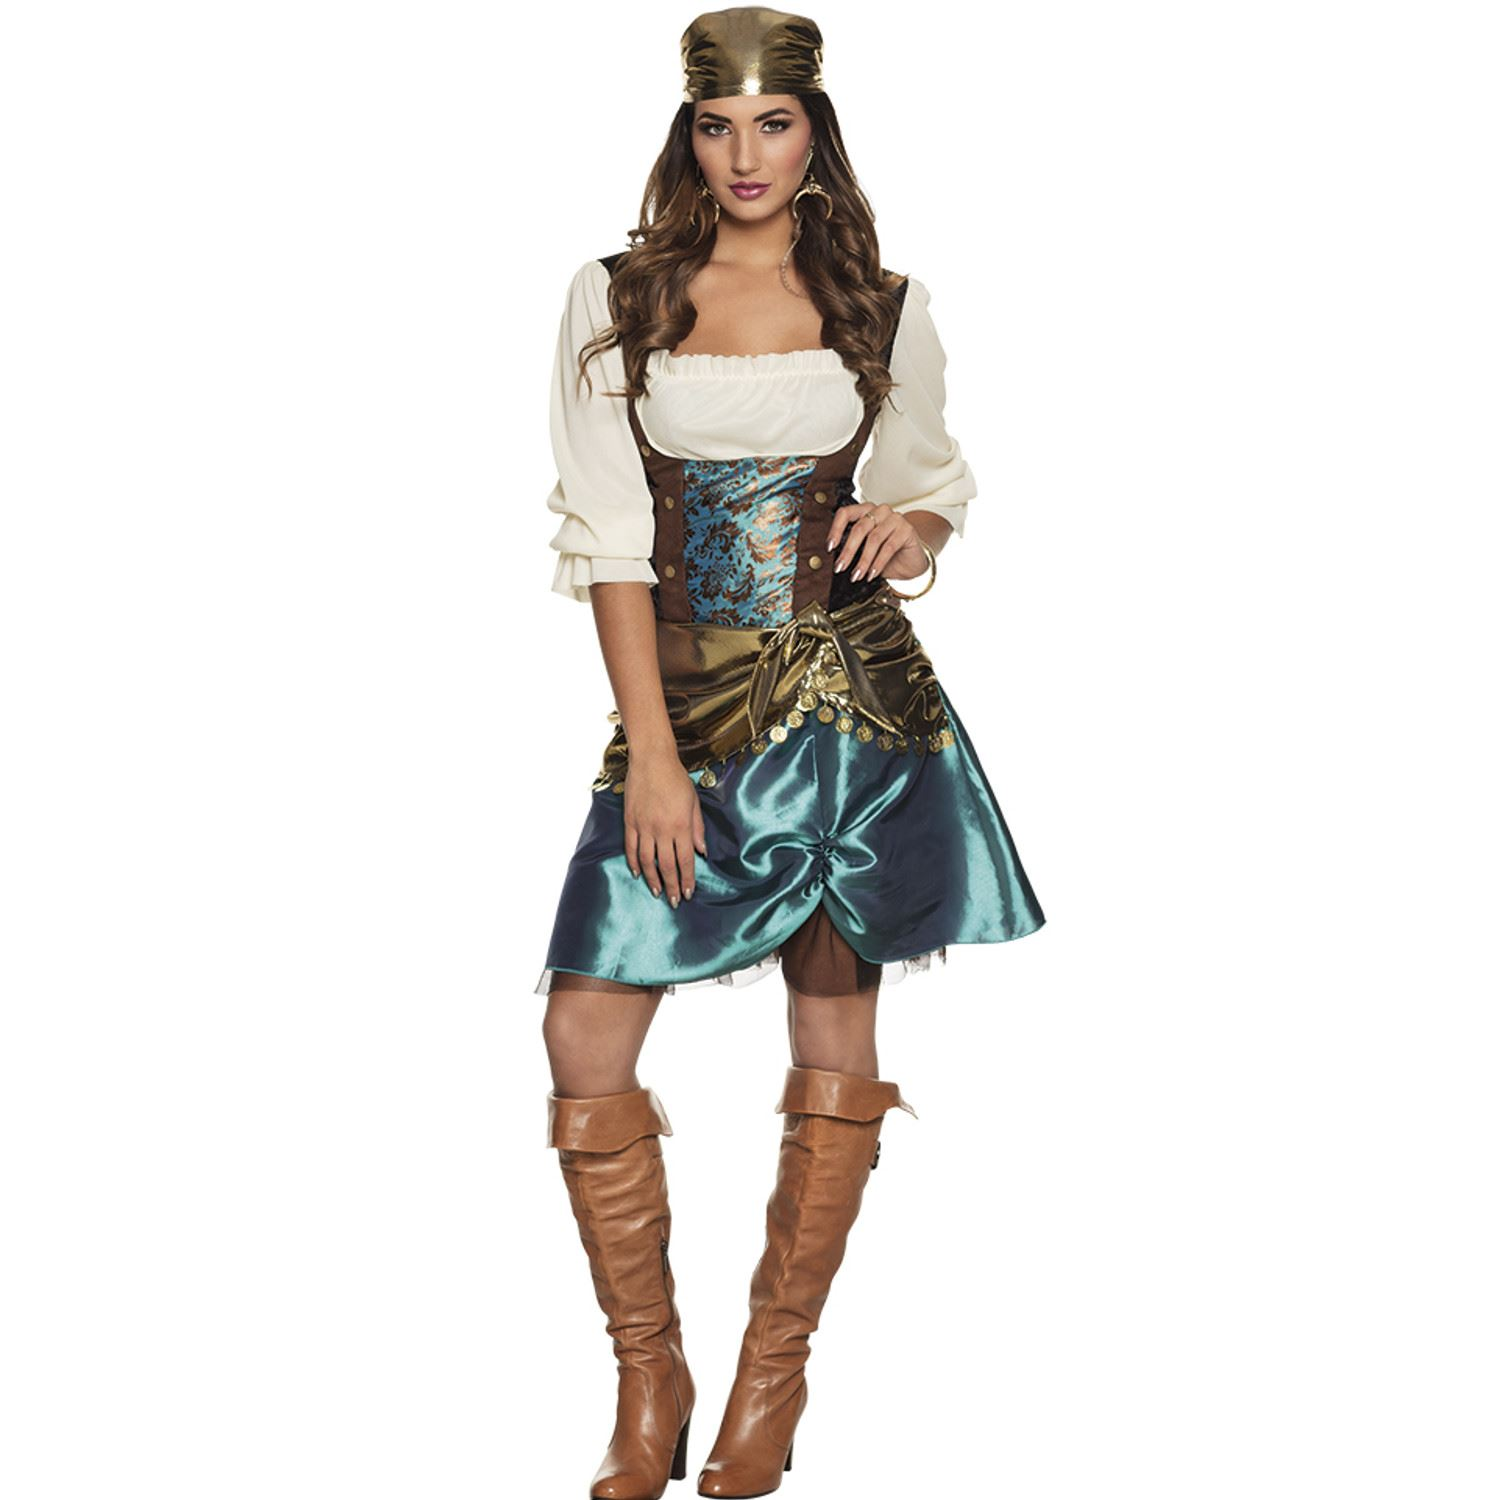 555dc2a0a3 Details about Ladies Romany Gypsy Esmerelda Costume Fortune Teller Fancy  Dress Outfit